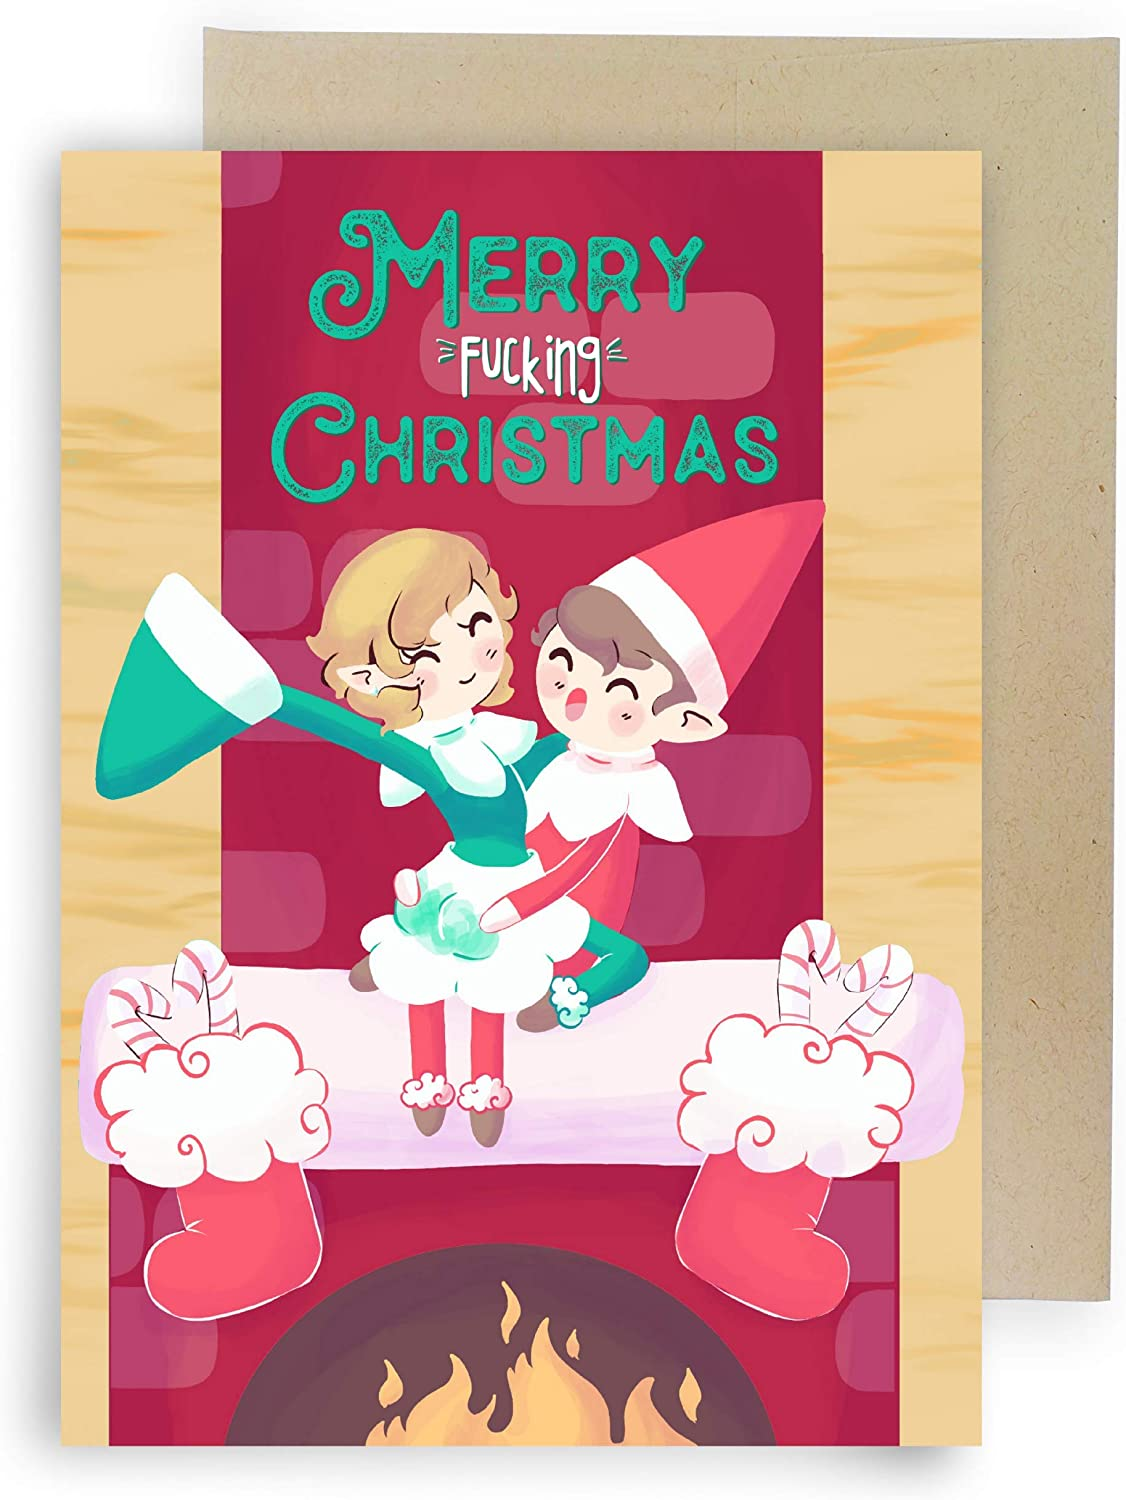 Sleazy Greetings Elves Doing The Naughty Funny Christmas Card For Men Husband   Adult Dirty Christmas Card For Him Boyfriend With Matching Envelope